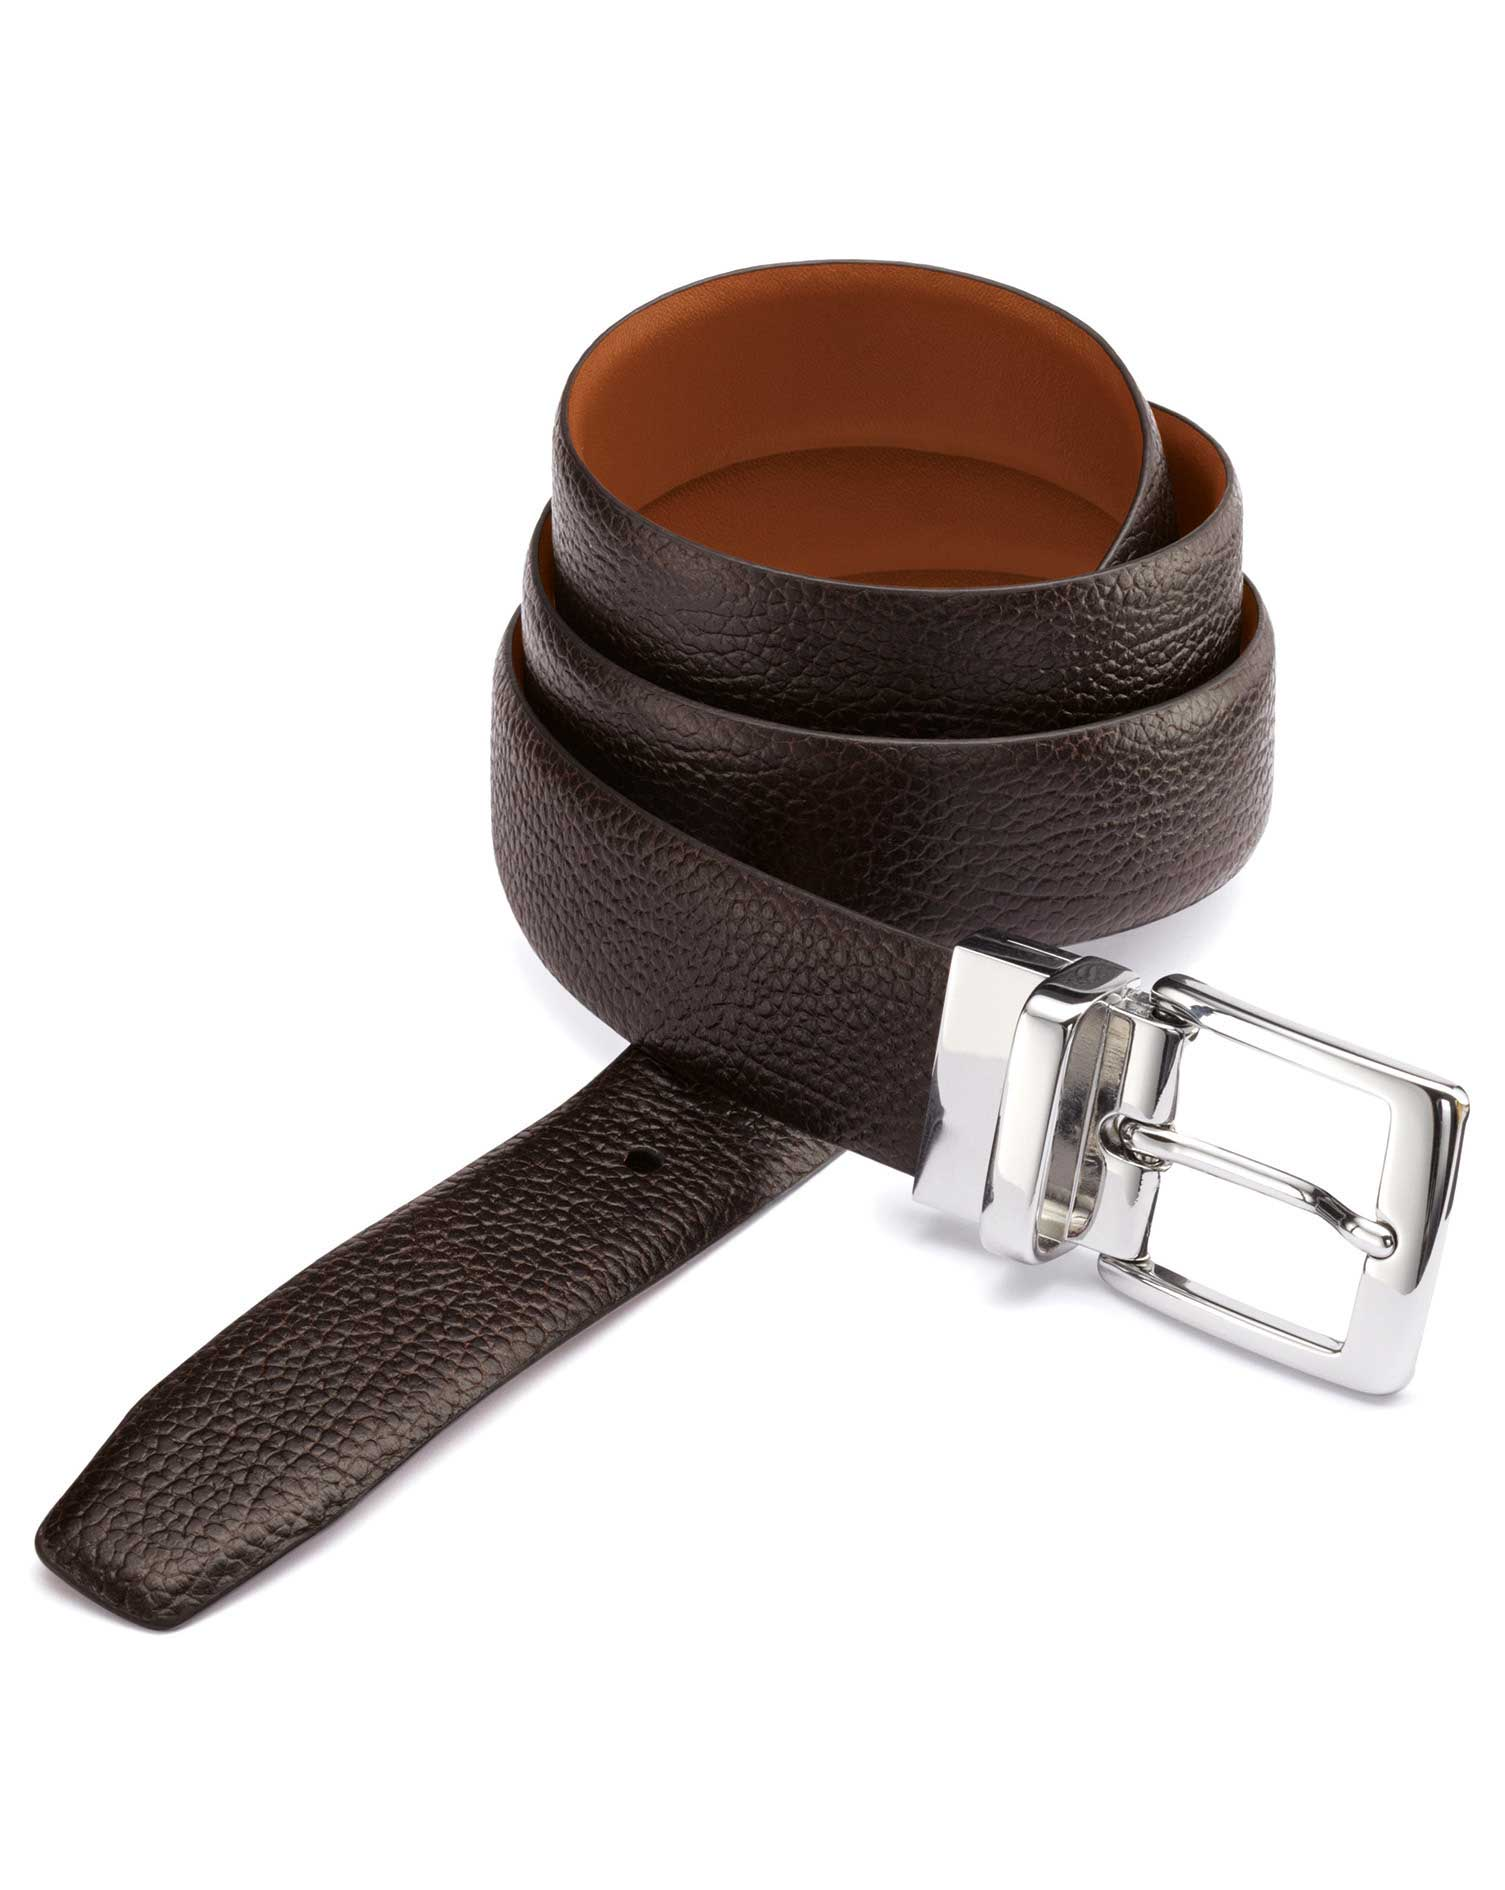 Brown and Tan Reversible Belt Size 30-32 by Charles Tyrwhitt